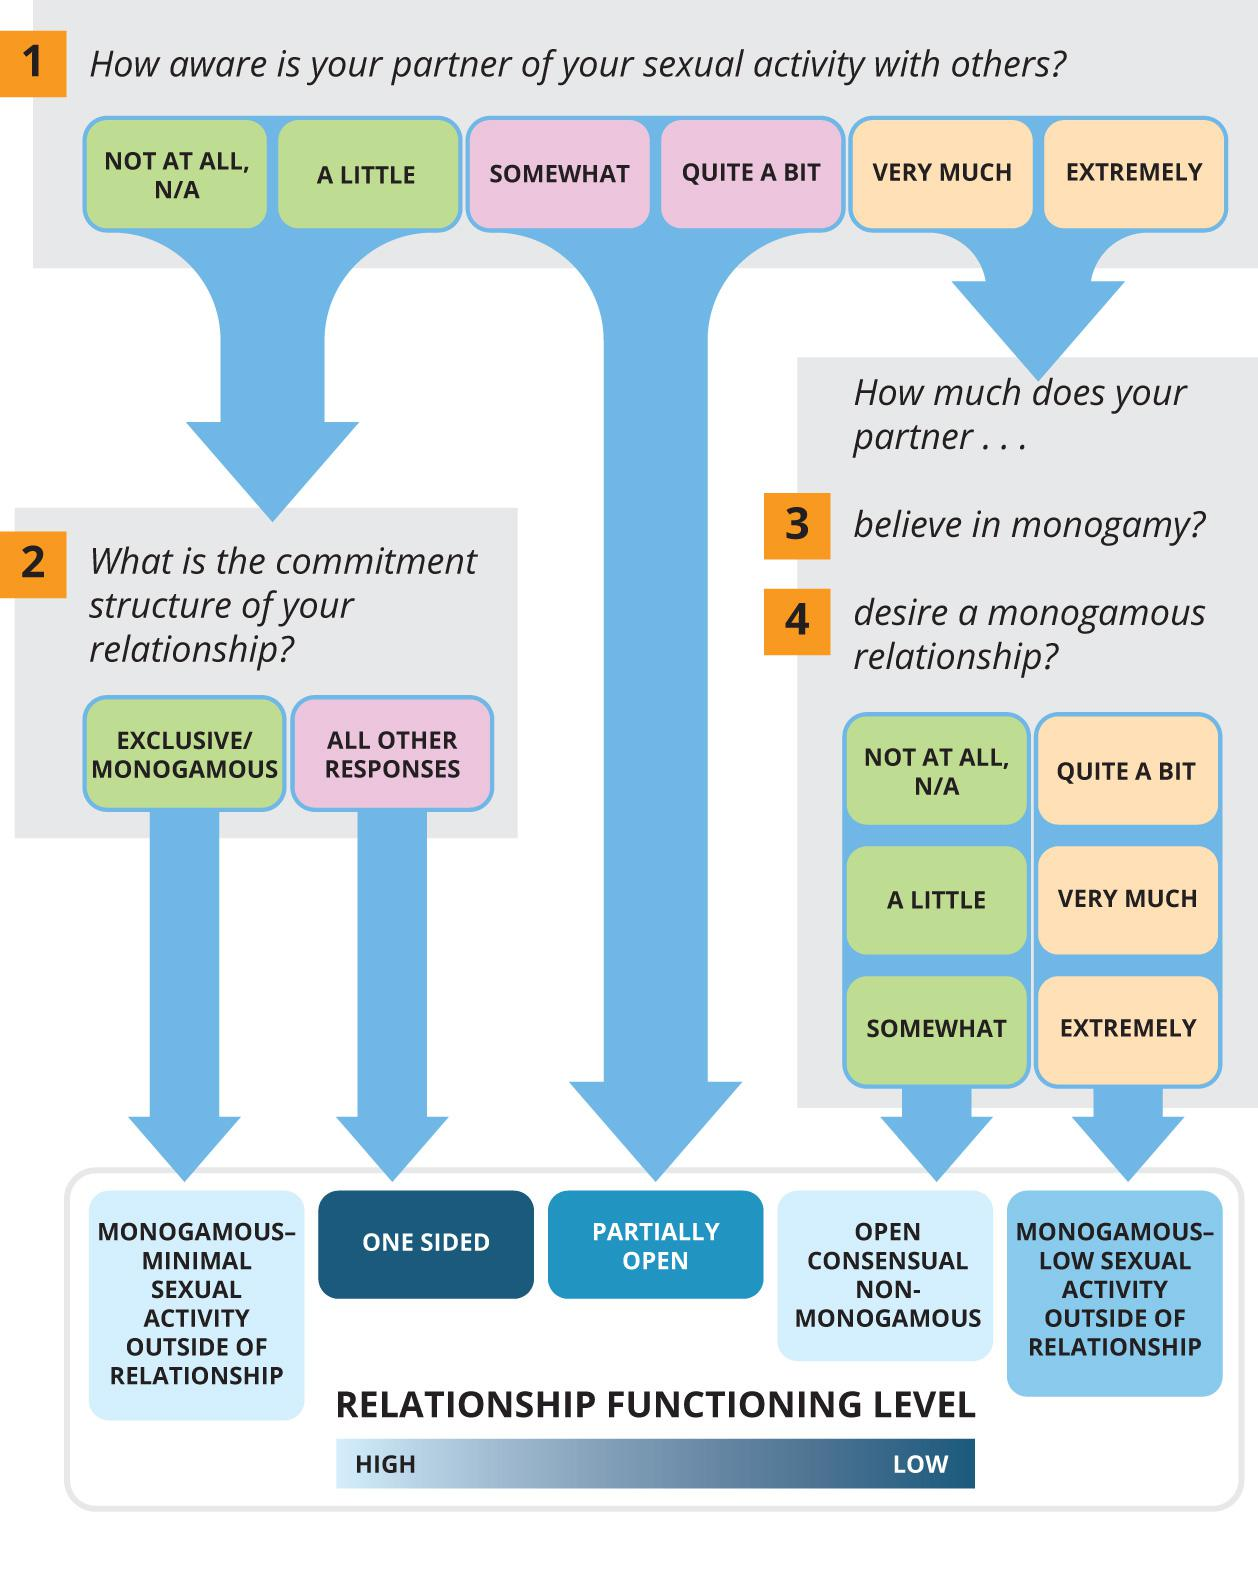 """Flowchart steps through a four-step process. Step 1: How aware is your partner of your sexual activity with others. The options are Not At All, A Little, Somewhat, Quite a Bit, Very Much, and Extremely. For the Not at All and A Little Options, the flowchat moves to the next step, """"What is the commitment structure of your relationship? There are two options there, 'Exclusive/Monagamous and All Other Responses. For the Very Much and Extremely Options in step one, the flow chart goes to the next step, How much does your partner believe in monogamy or desire a monogamous relationship? On set of answers says Not At All, A Little, or Somewhat. And another set of answers says Quite a Bit, Very Much, and Extremely. Each of these five paths point down to a row at the bottom of the chart that represents a continuum of relationship functioning success, with from High to Low."""